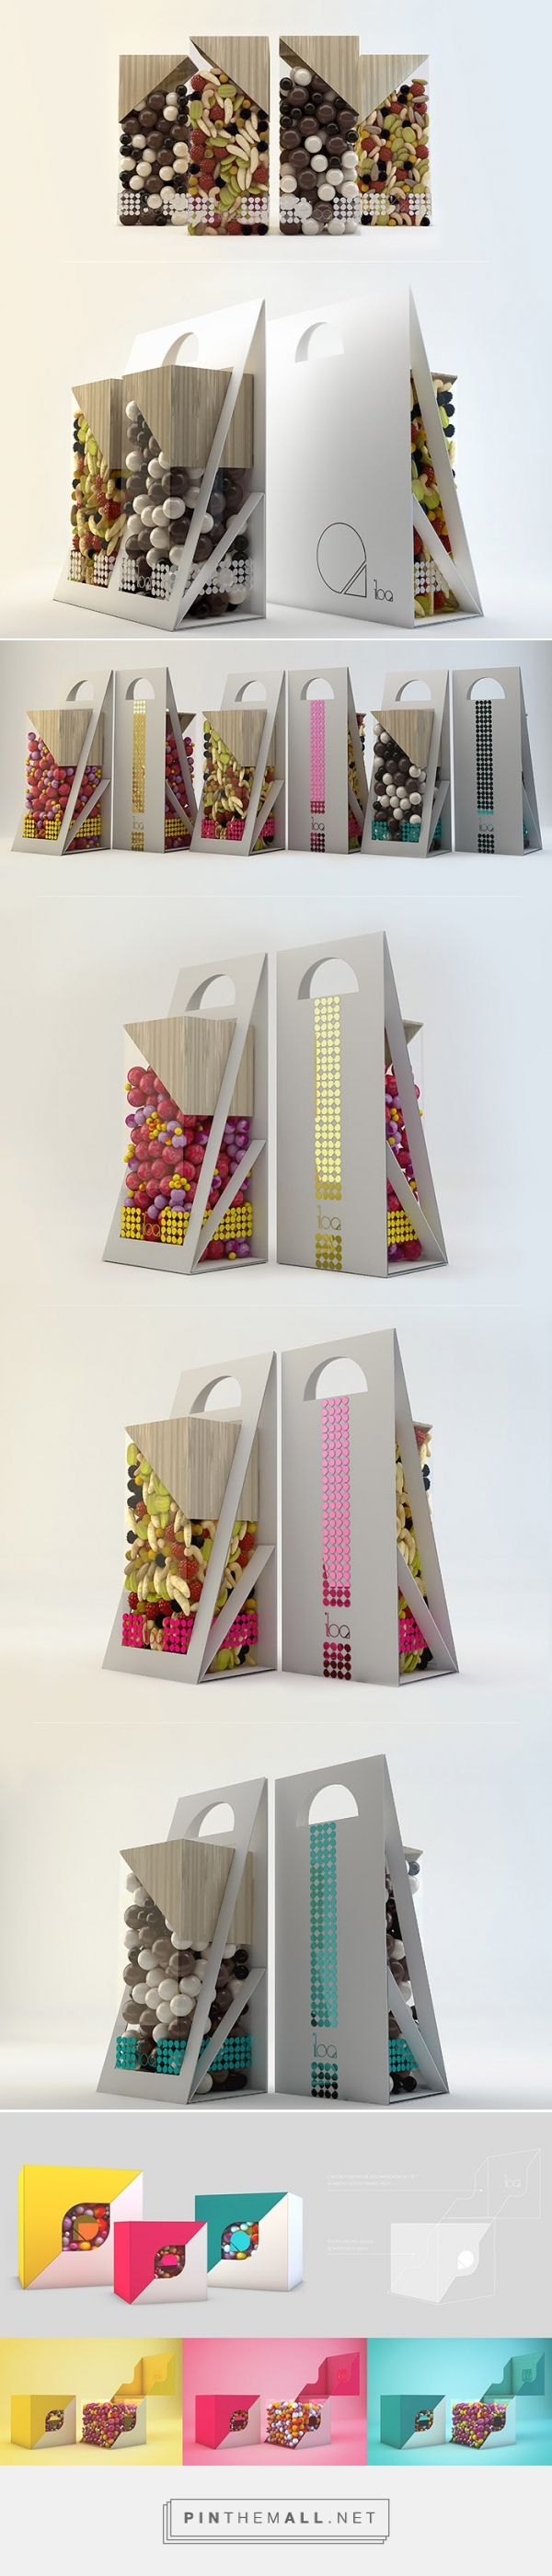 Iloa candies by Inés Ortega San Miguel. Pin curated by #SFields99 #packaging #design